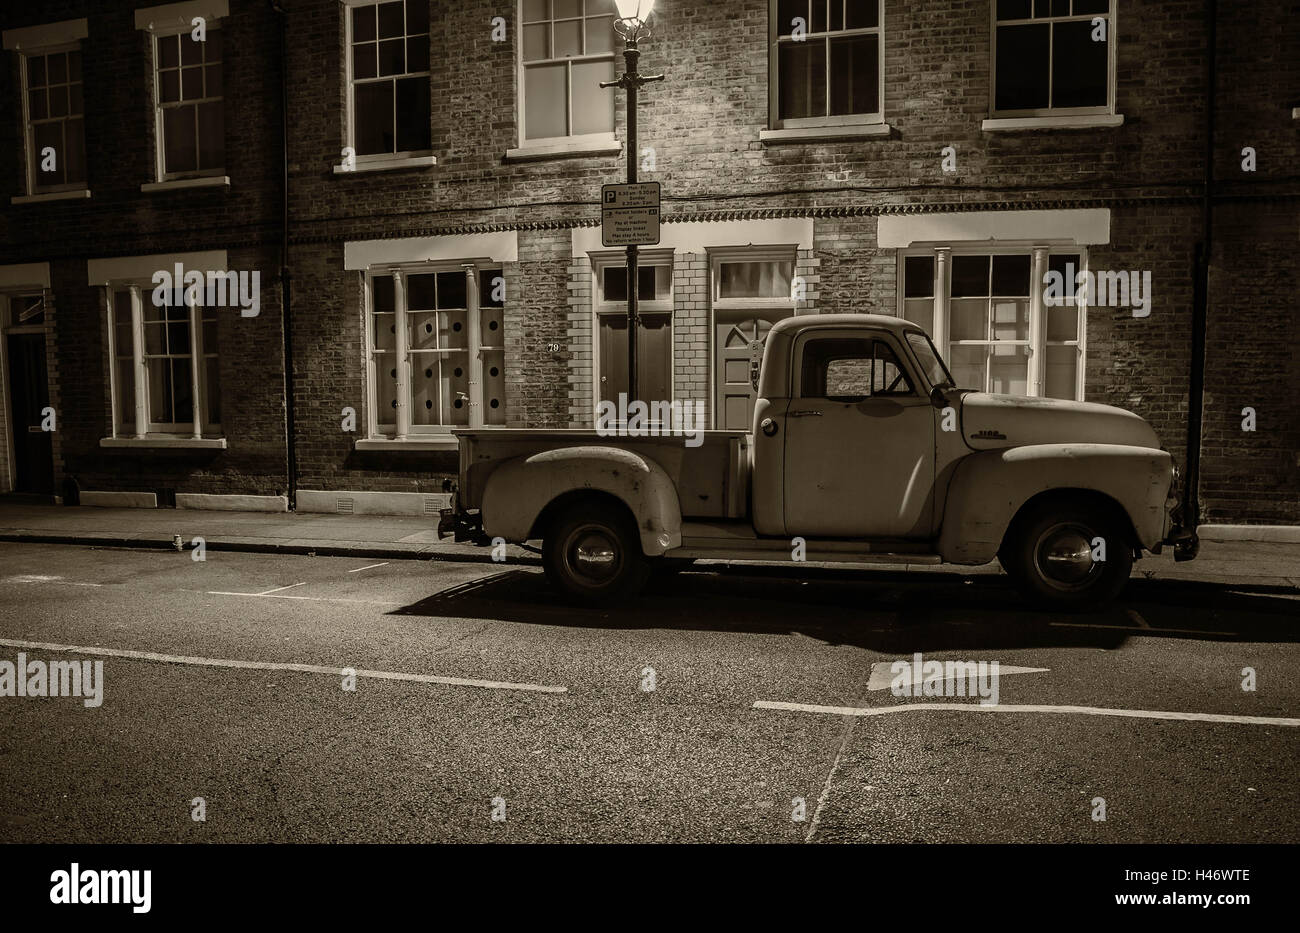 Parked Pickup Truck Stock Photos Images 1950 S Ford Long Bed An Old 1950s Chevrolet In A Victorian Street South London At Night